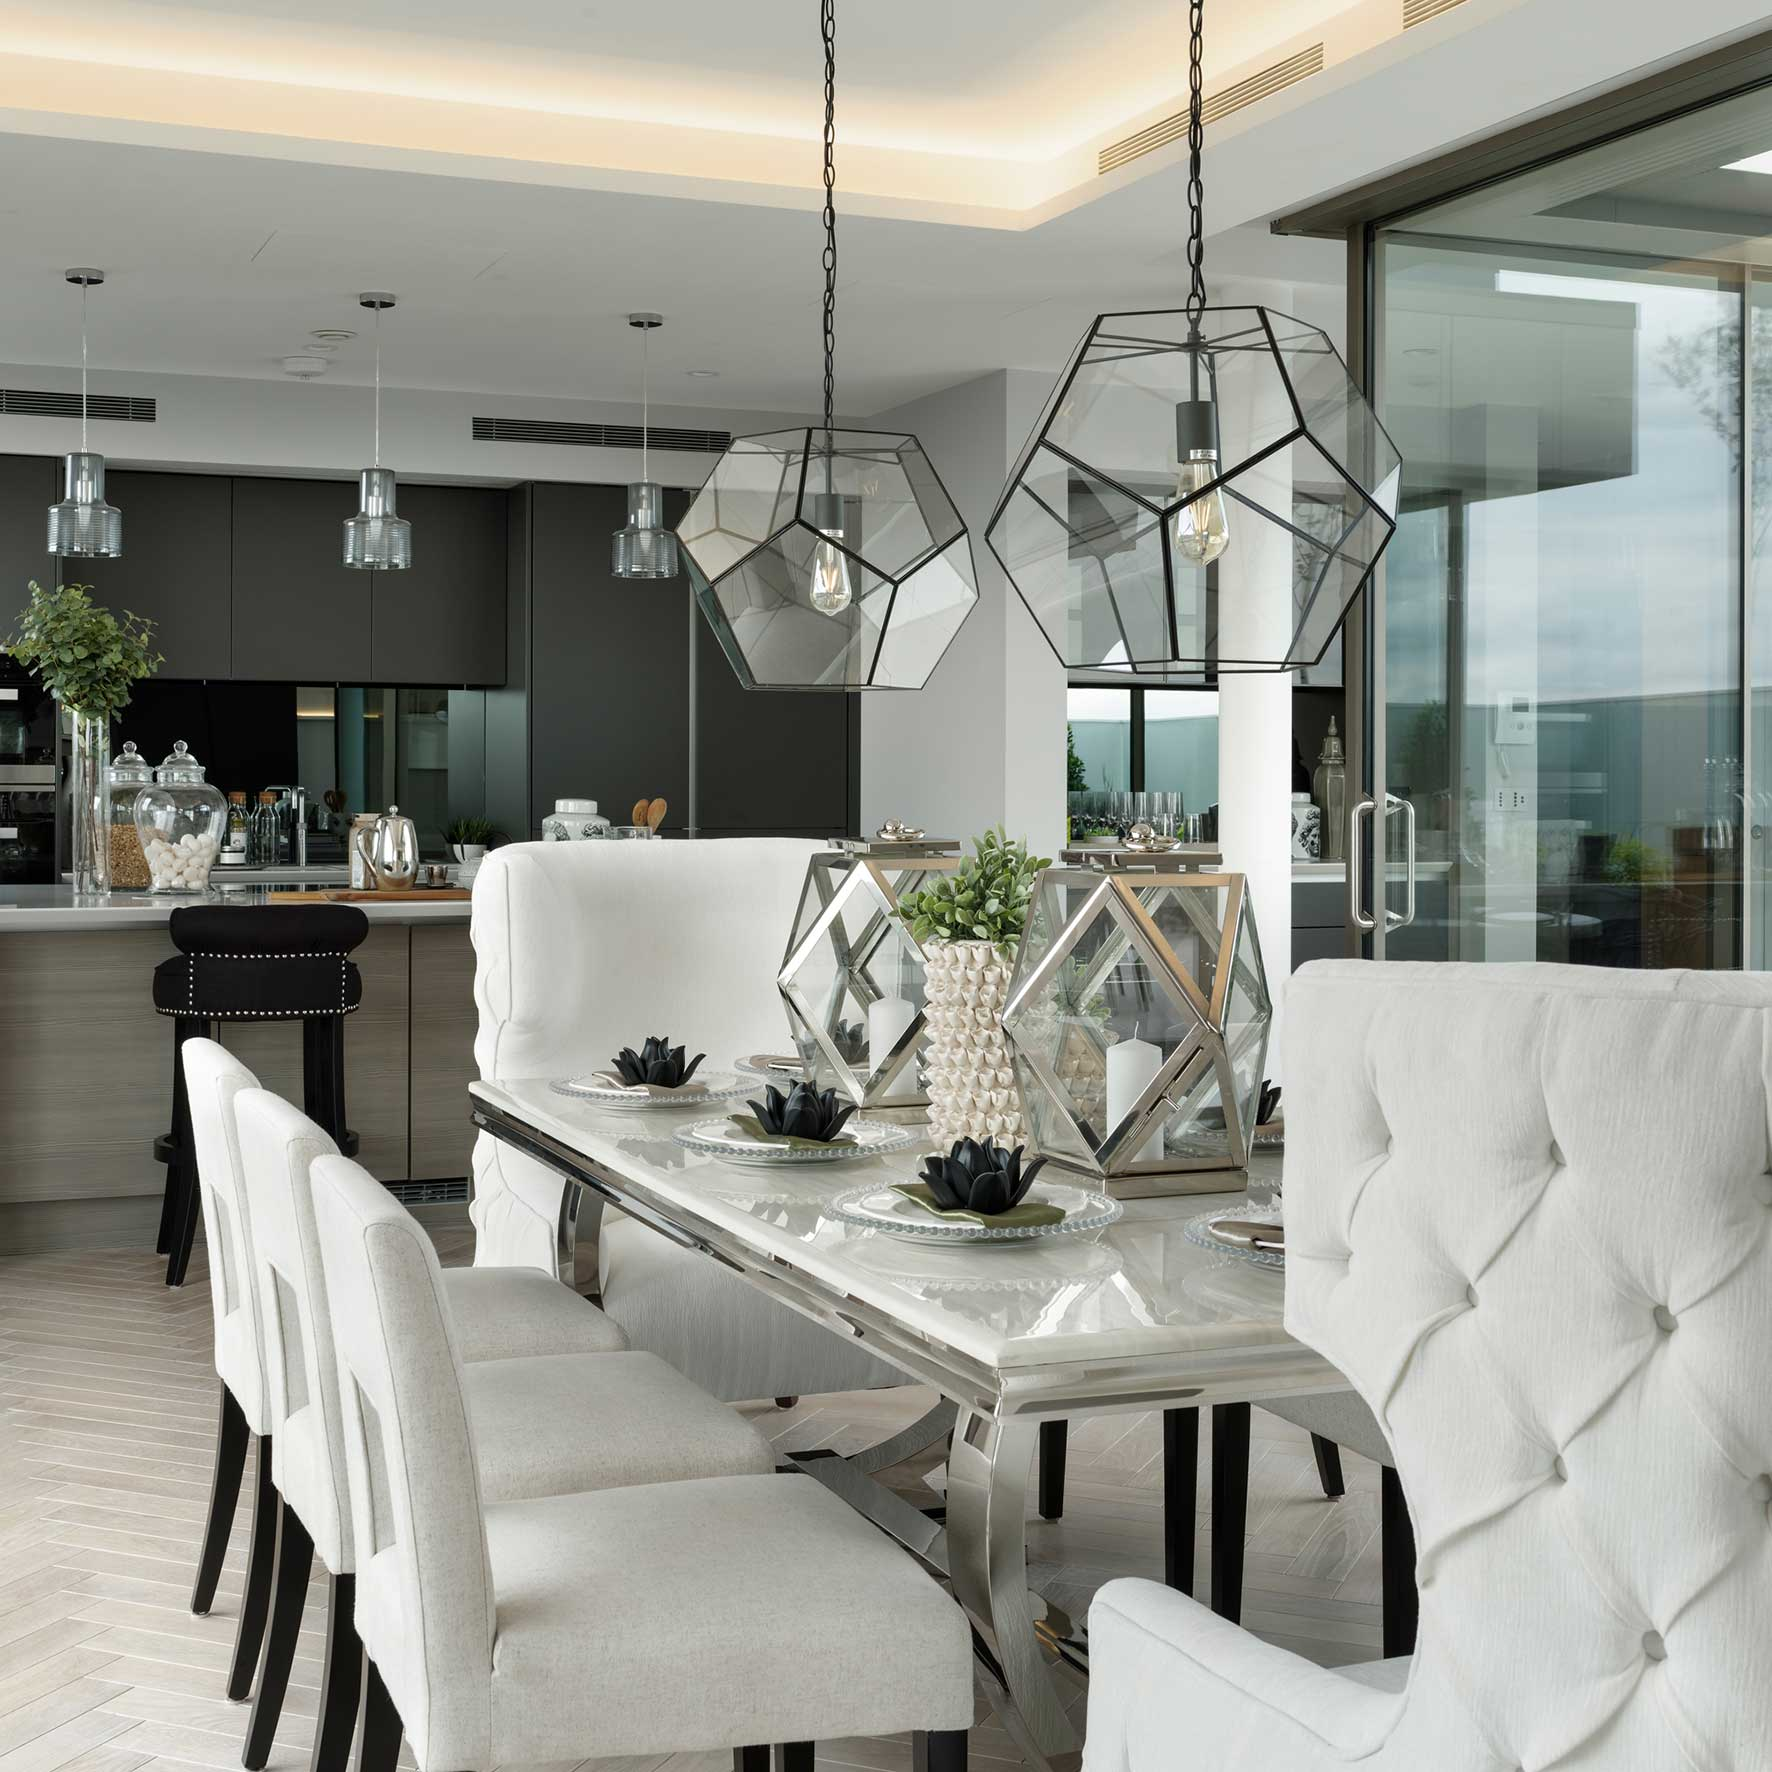 Show home for Fruition Properties by Suna Interior Design at Madison Penthouse_11.jpg